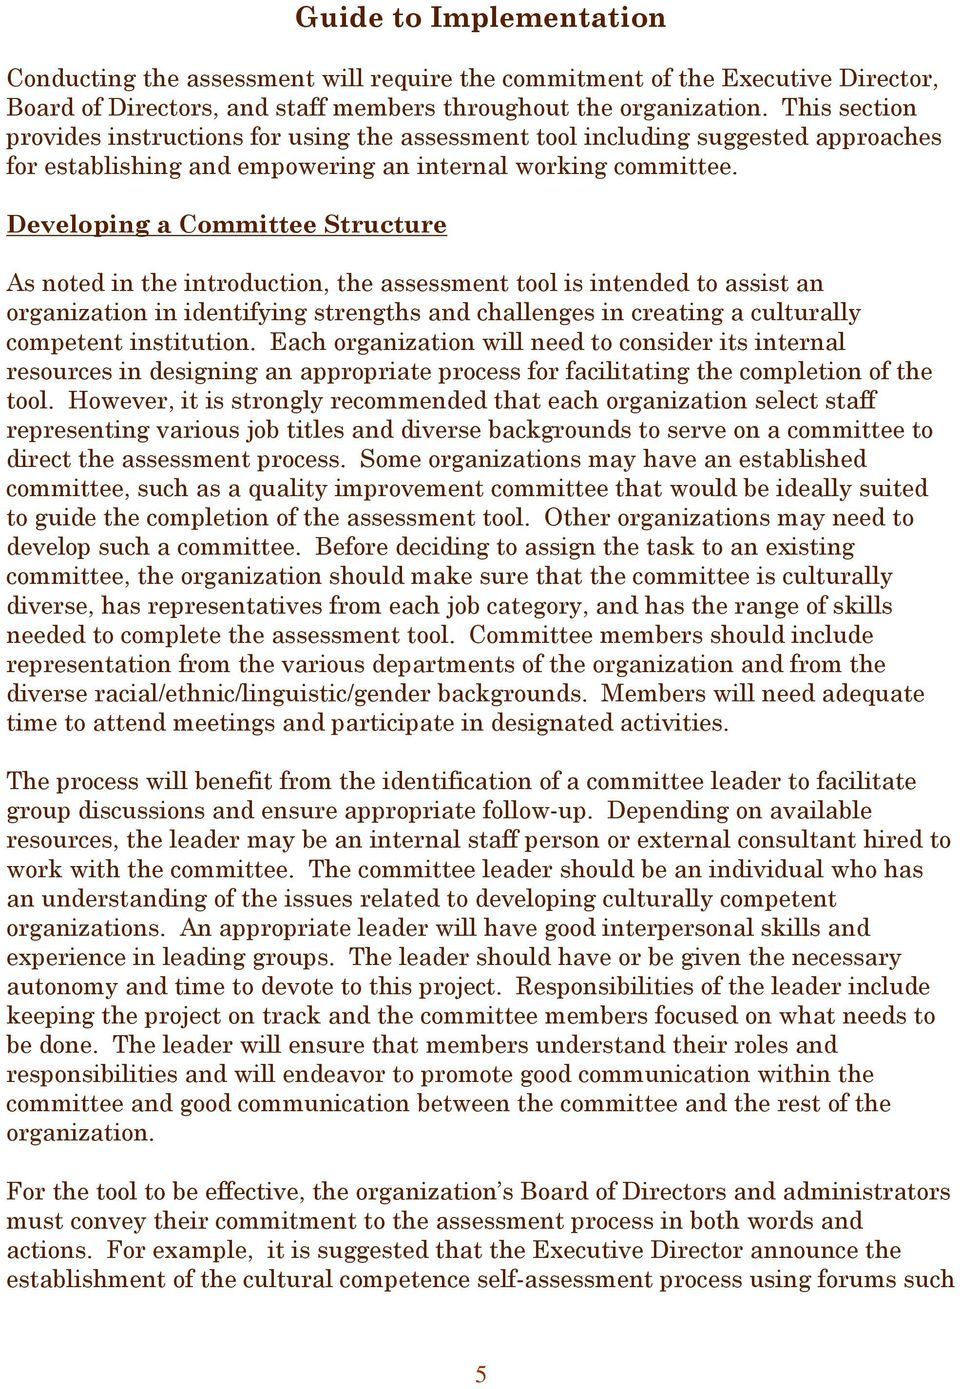 Developing a Committee Structure As noted in the introduction, the assessment tool is intended to assist an organization in identifying strengths and challenges in creating a culturally competent